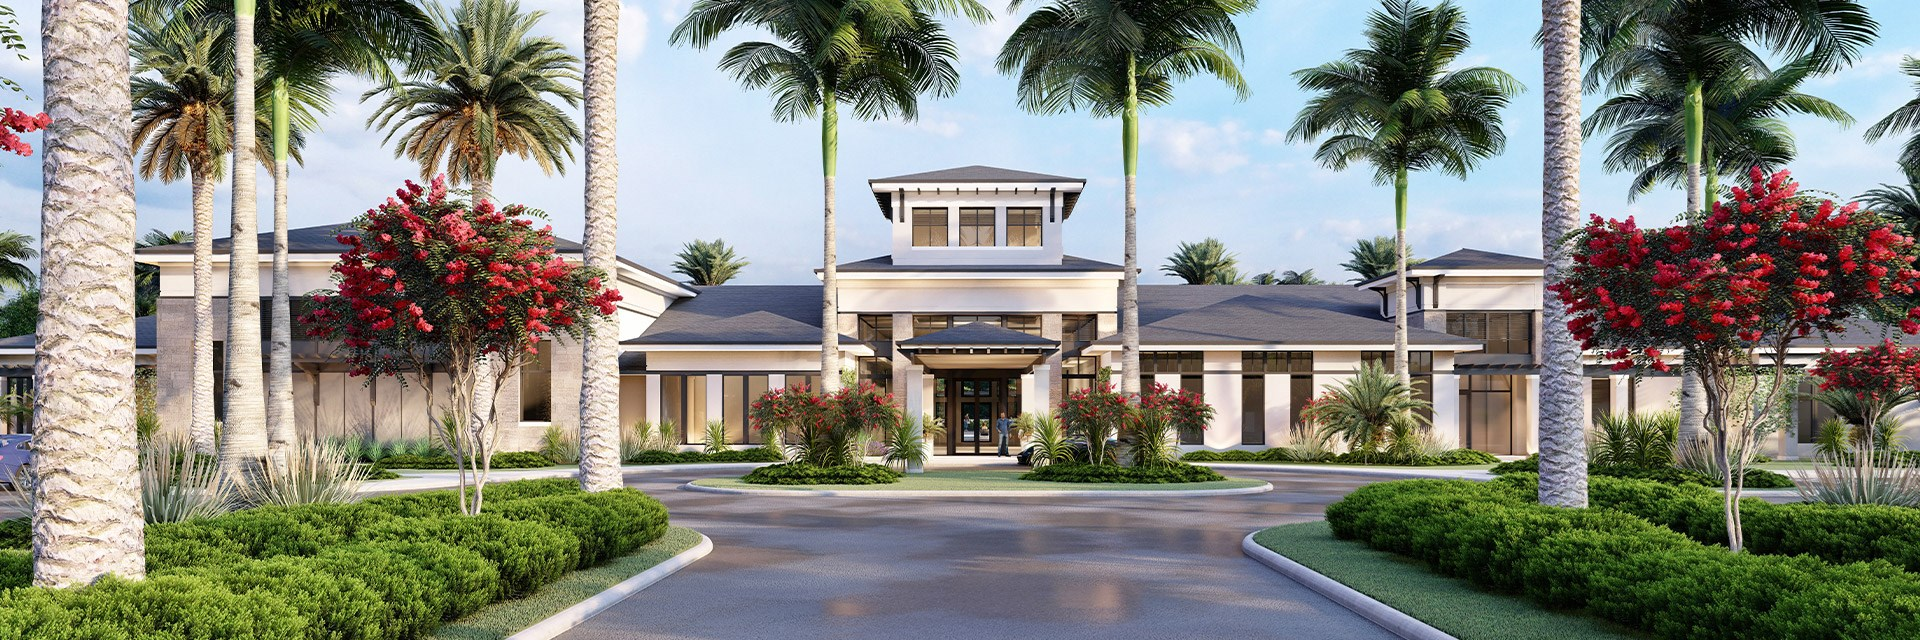 27,000 SQ. FT. CLUBHOUSE